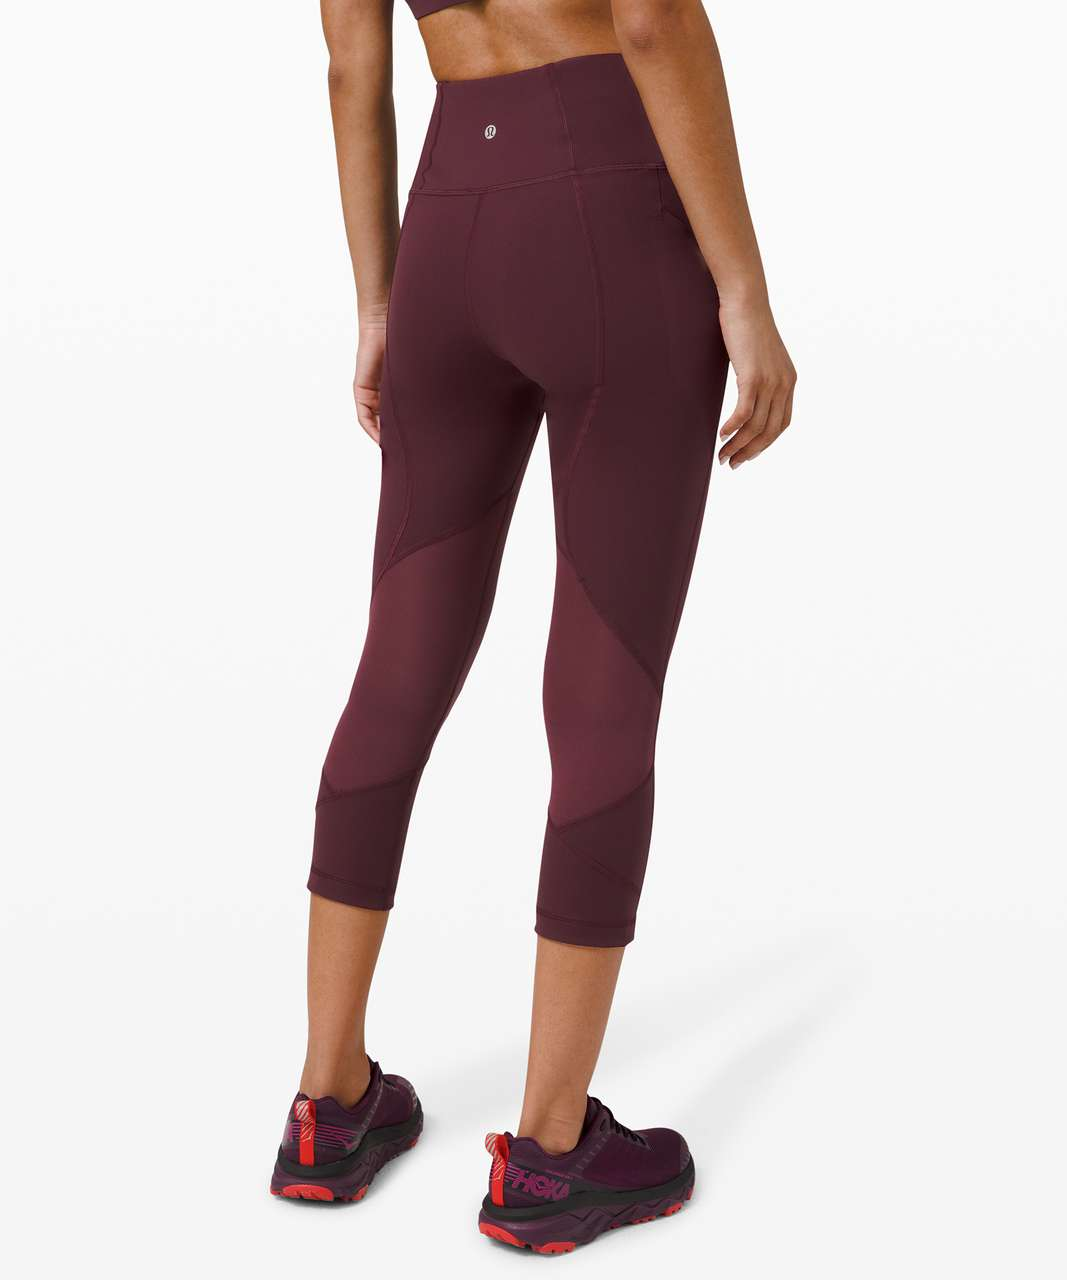 "Lululemon Pace Rival High-Rise Crop 22"" - Cassis"